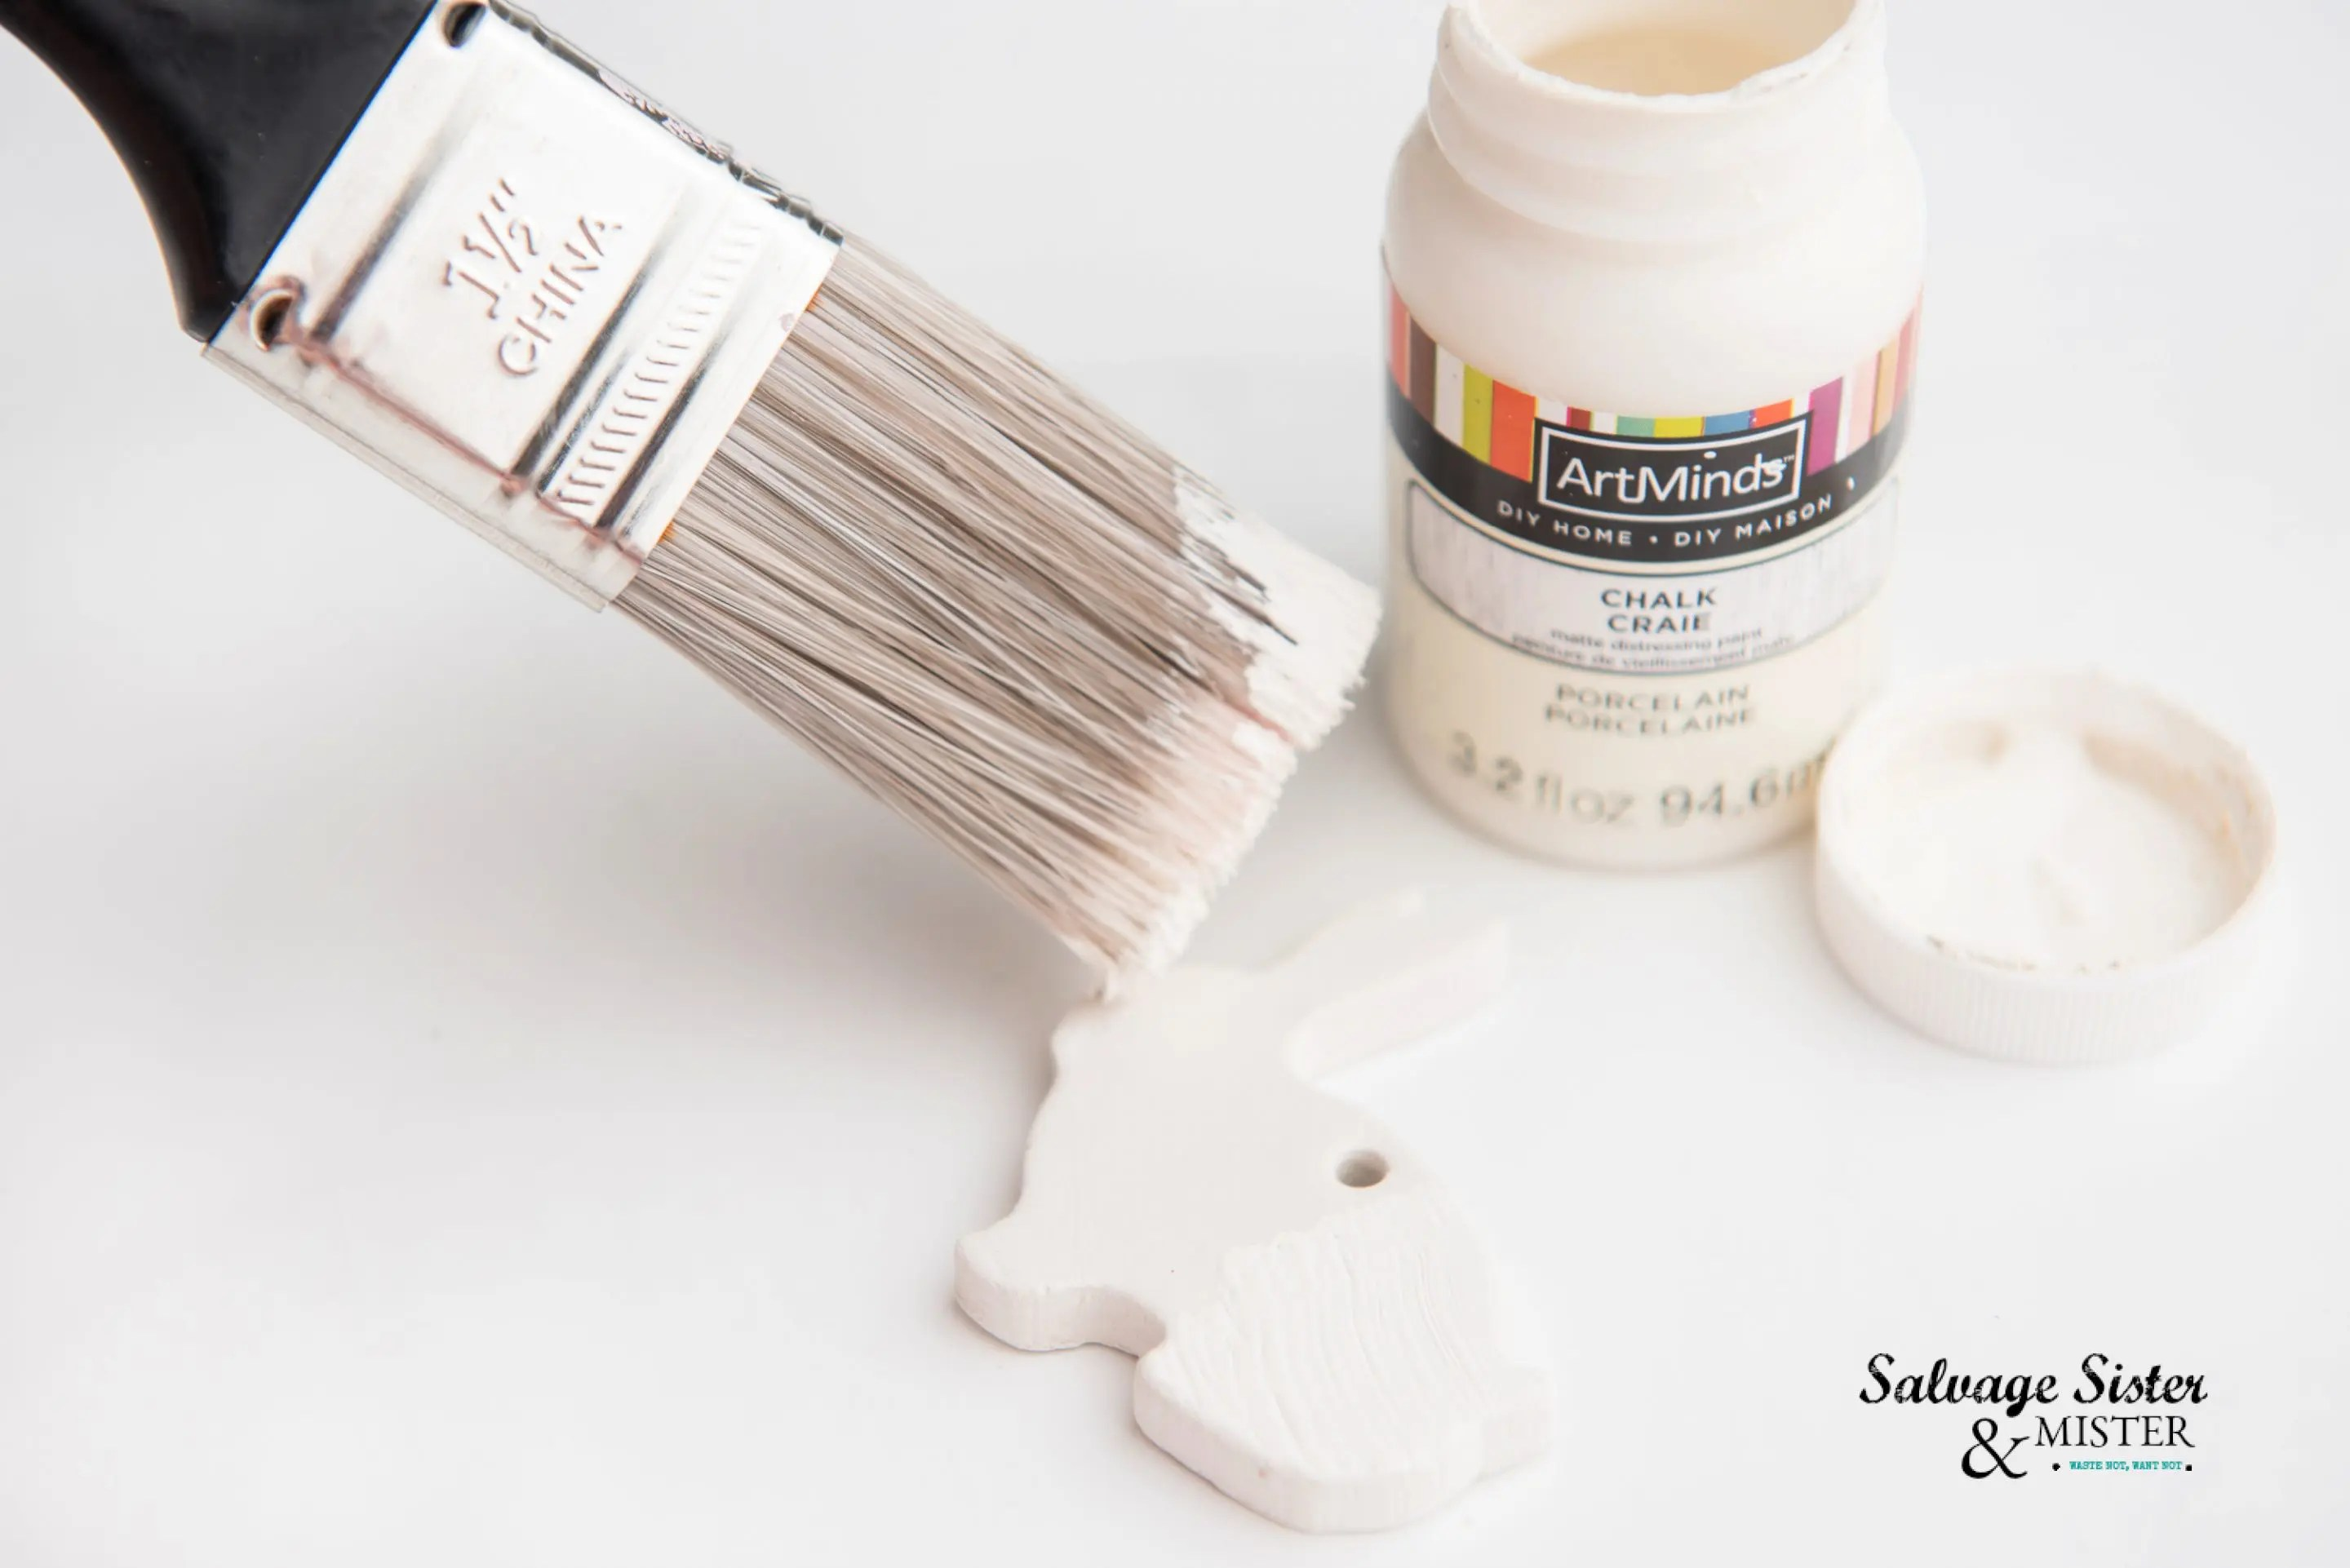 Chalk paint is easy to use on the cured clay.